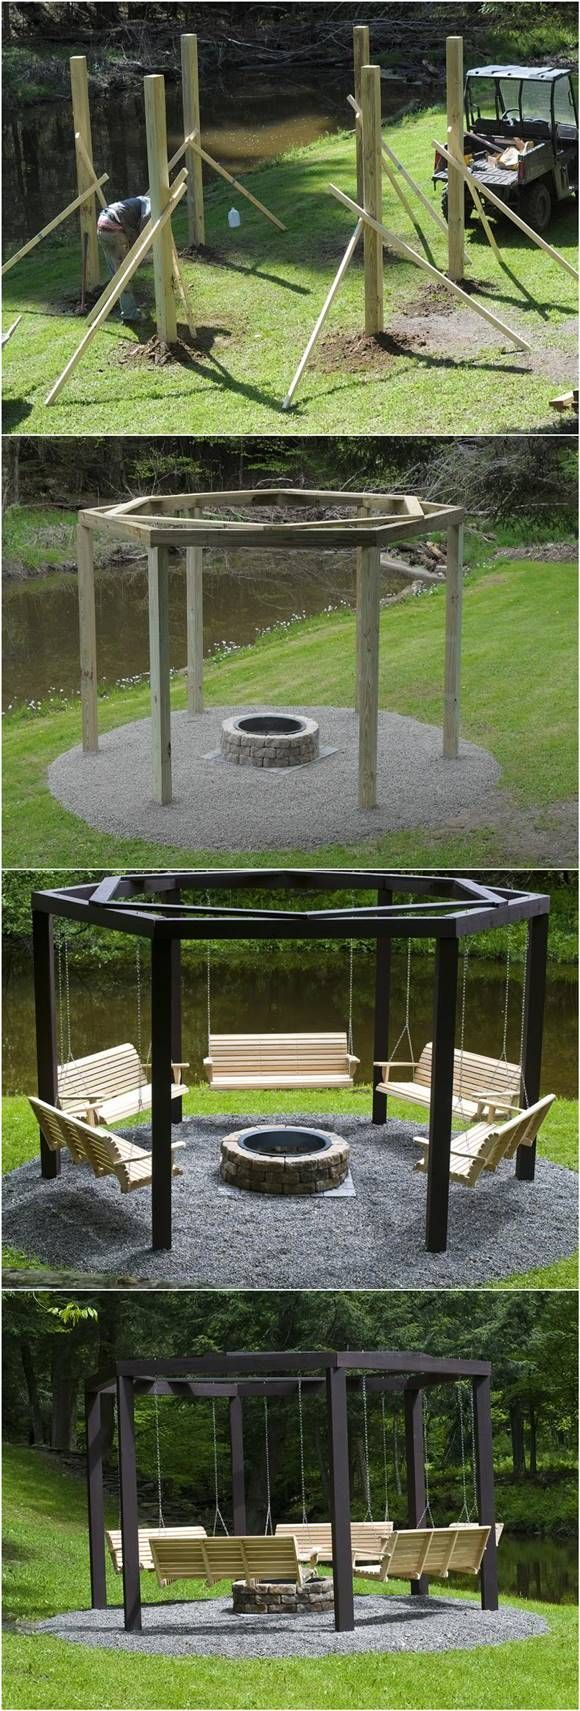 DIY Backyard Fire Pit with Swing Seats #backyard #home_improvement